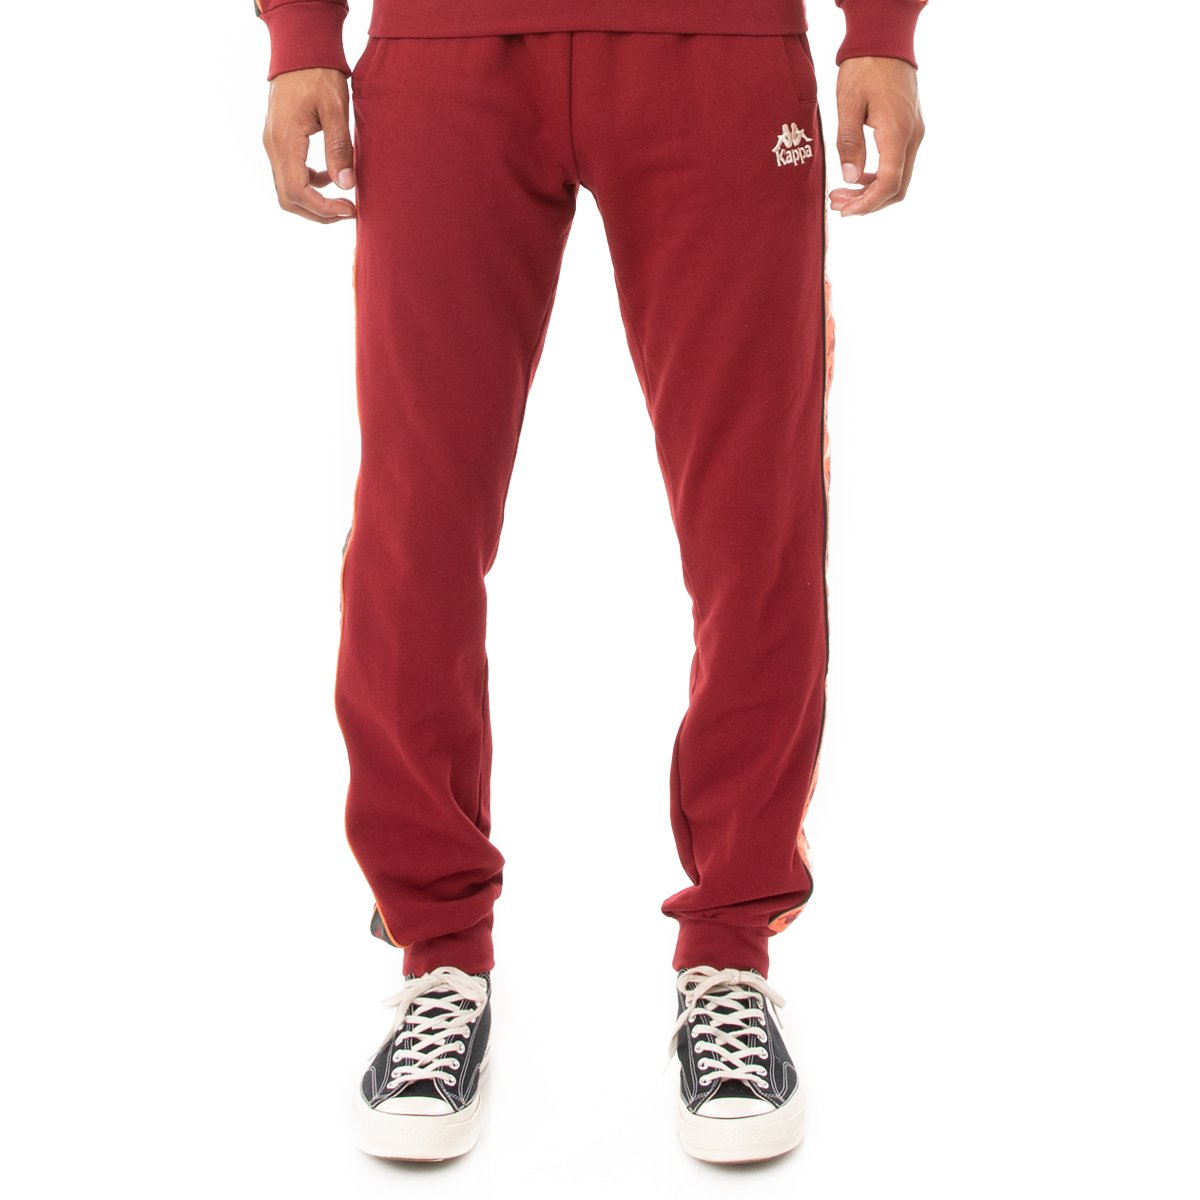 Kappa 222 Banda Alanz 3 Sweatpants - Red Dark Orange Green